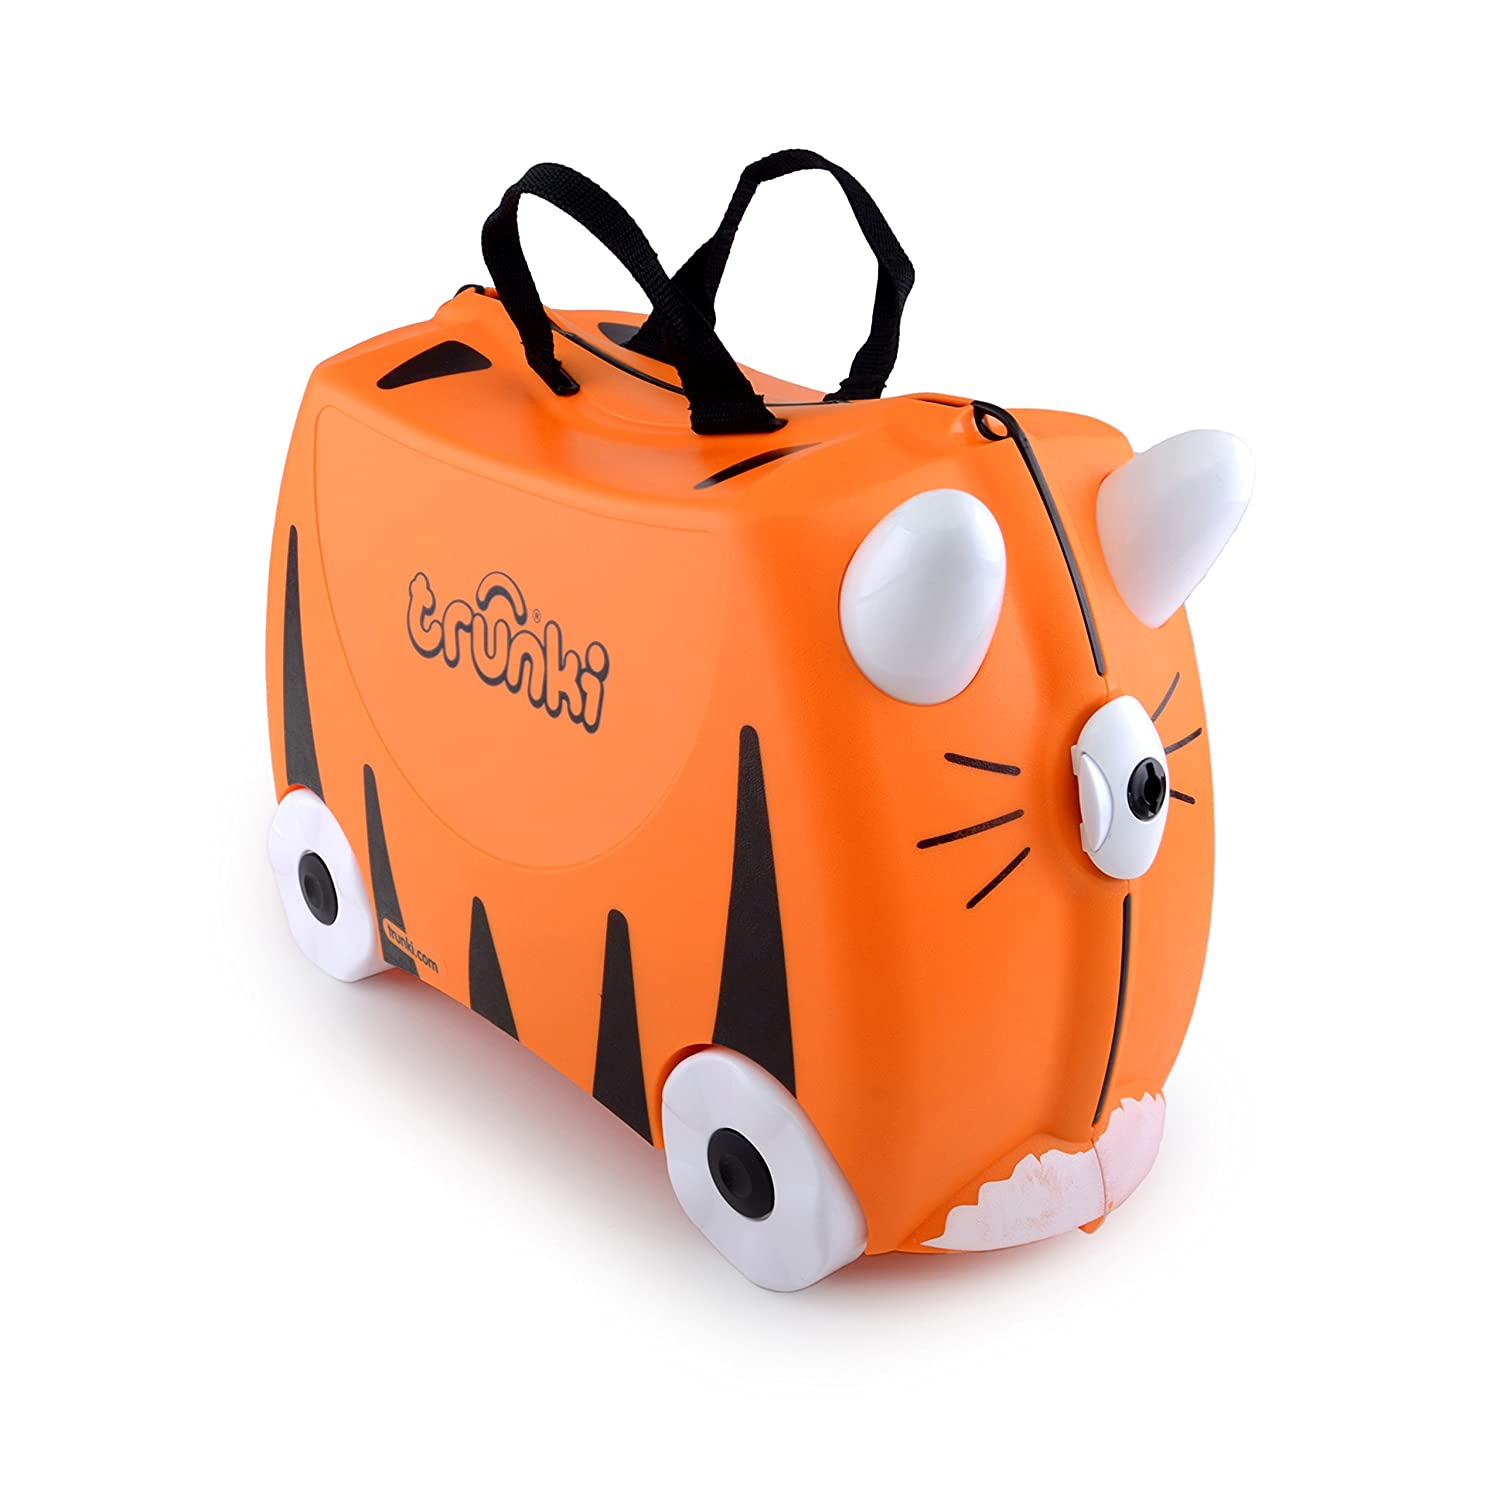 Trunki: The Original Ride-On Suitcase NEW, Tipu (Orange) 0085-WL01